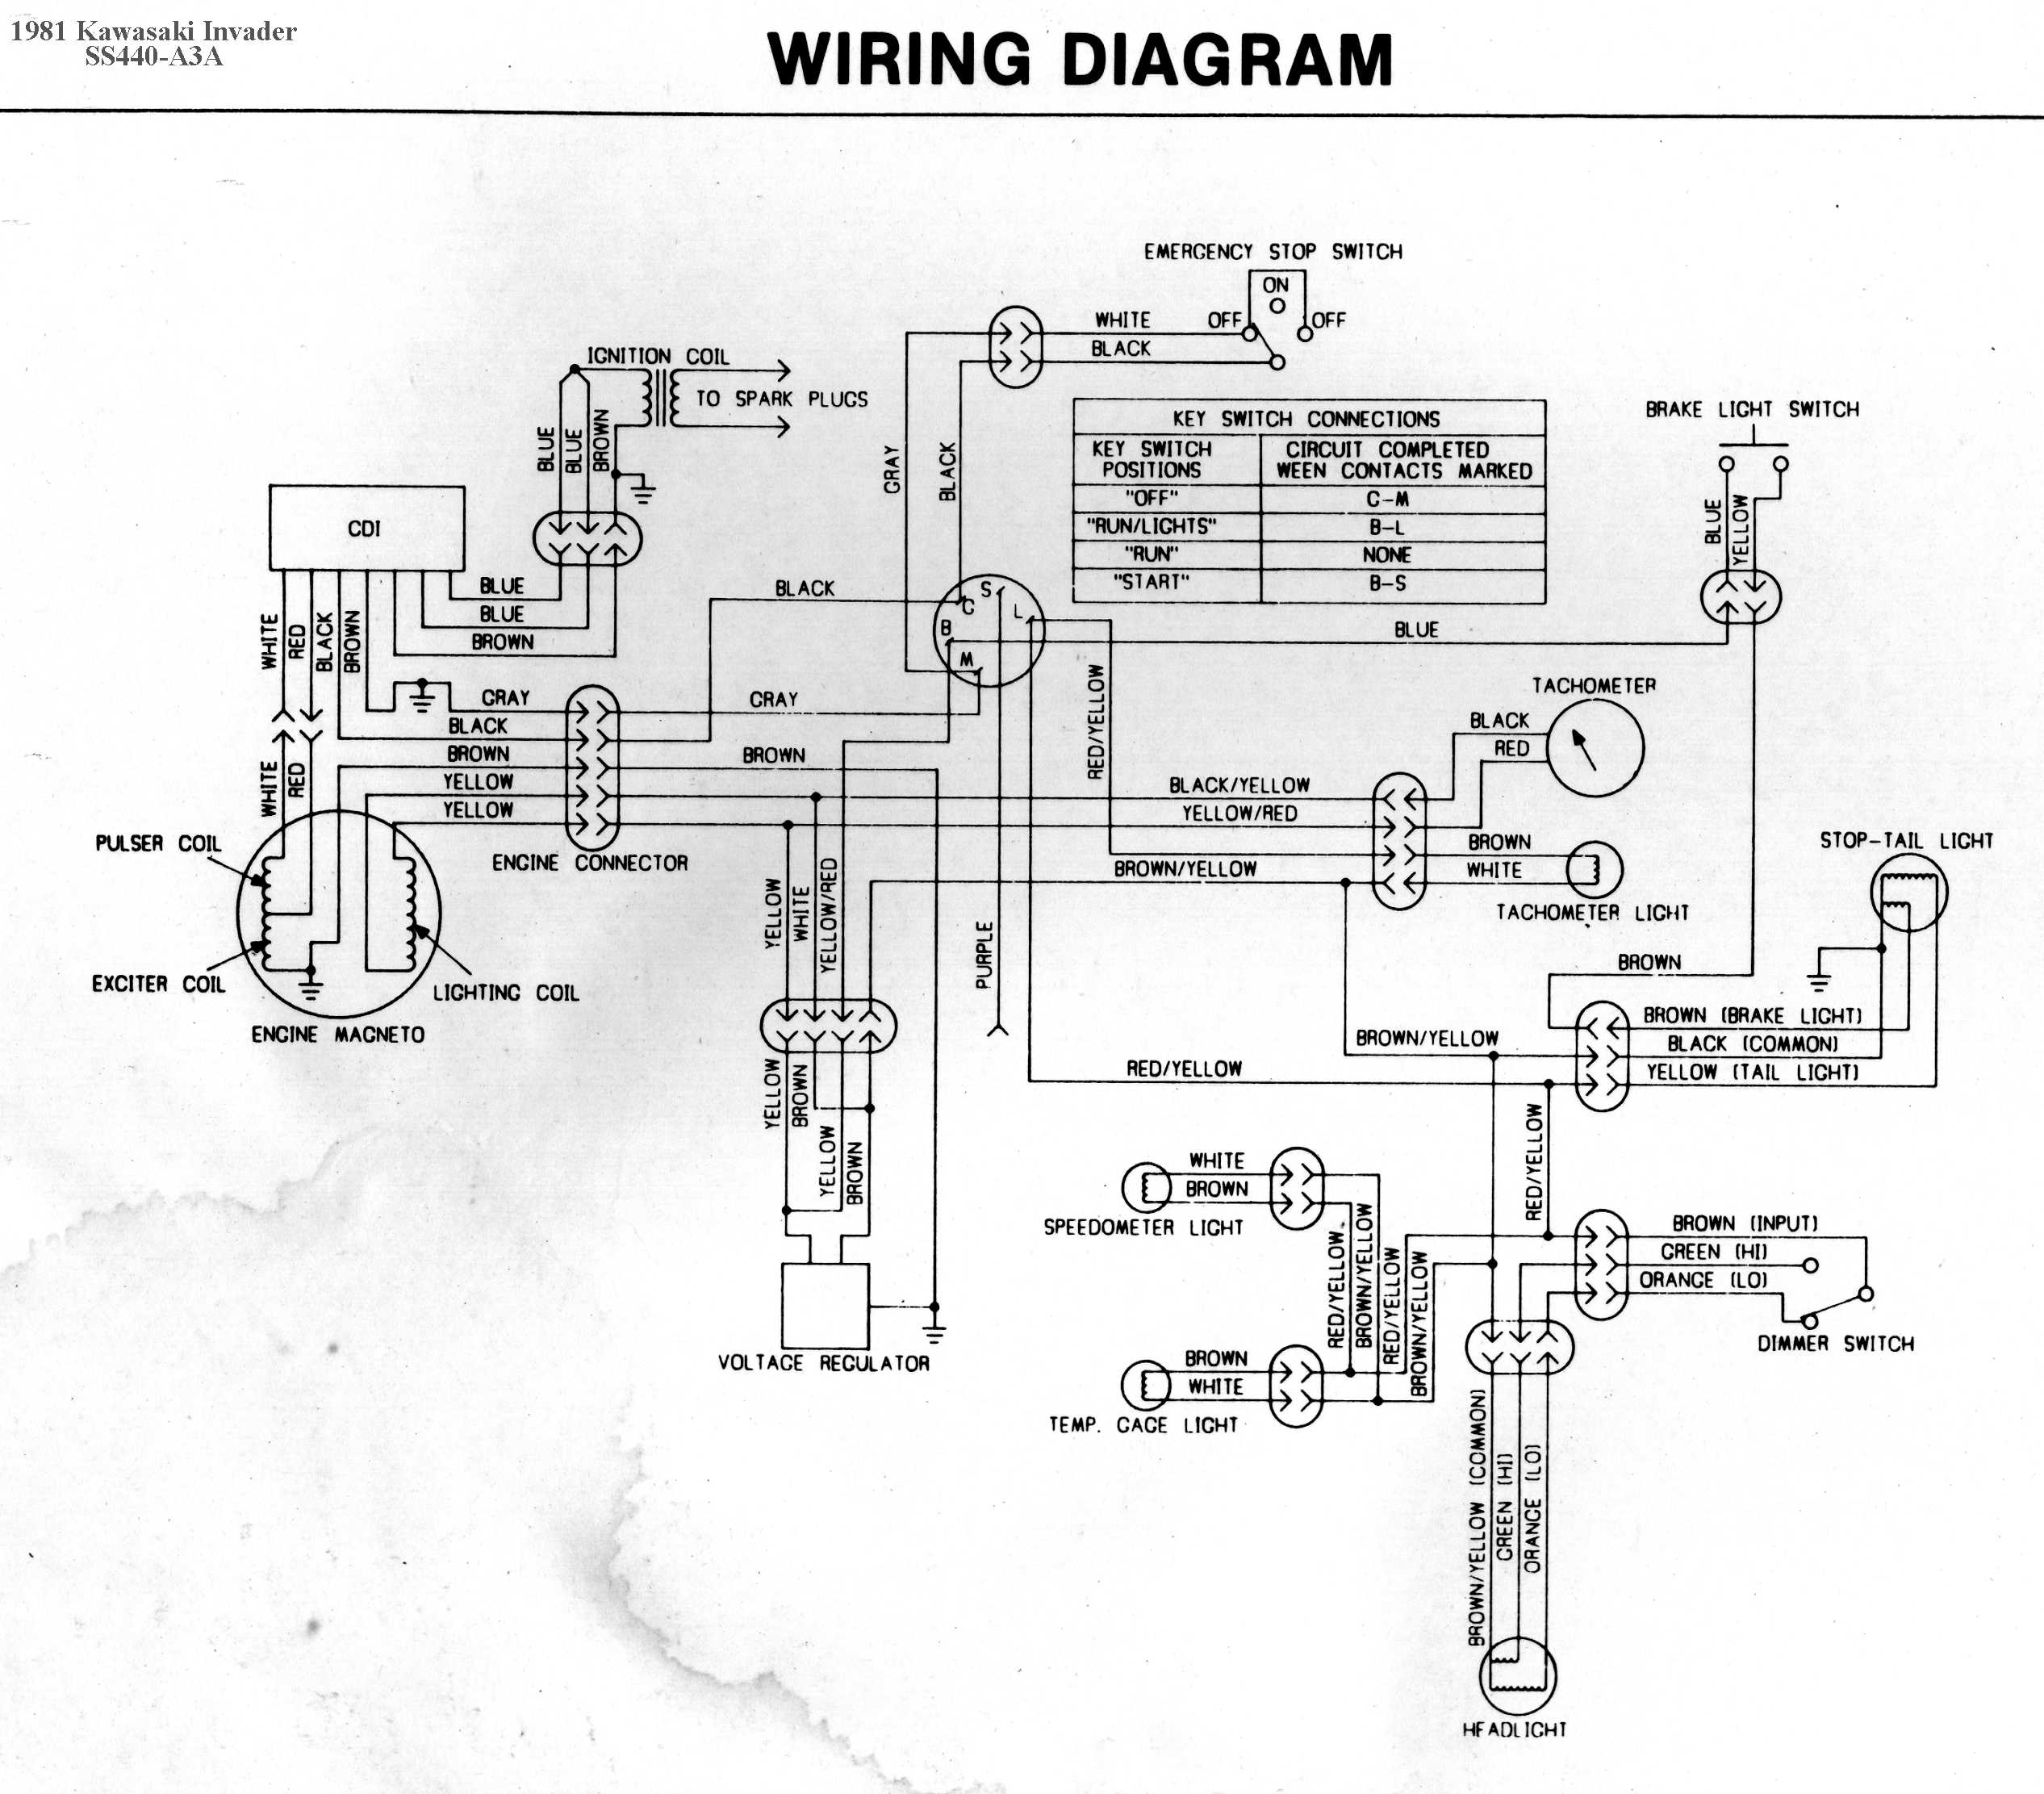 Kawasaki 454 Ltd Wiring Diagram Great Design Of 87 Klf 300 Diagrams Carburetor Free Engine 1988 89